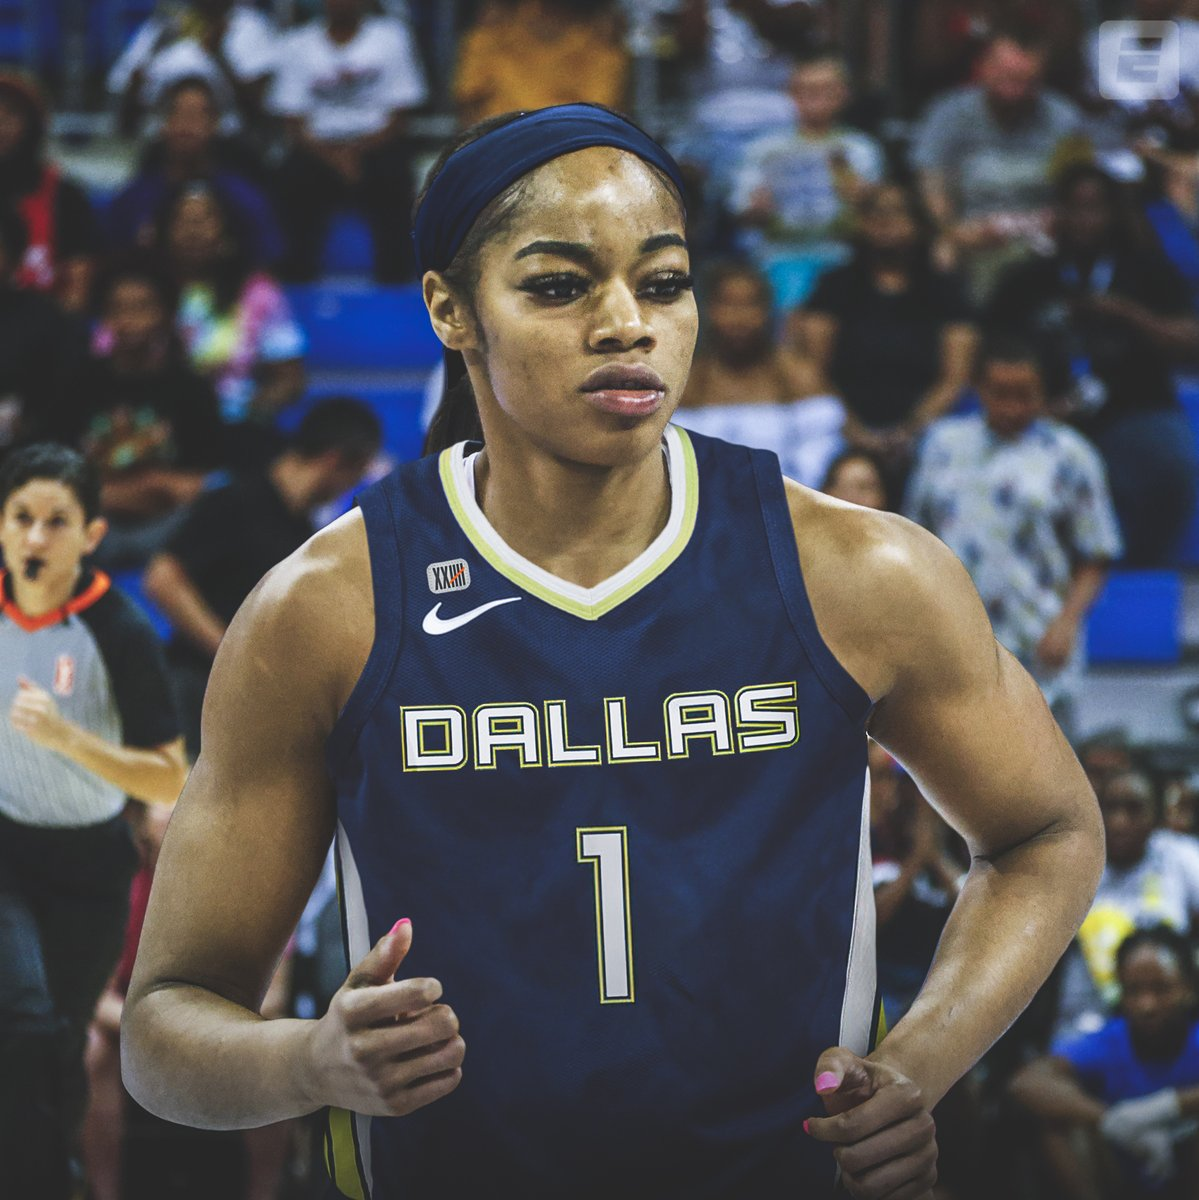 Staying in Texas!  The @DallasWings select @charlicollier No. 1 overall in the @WNBA draft 👏 https://t.co/8zYa234zSp